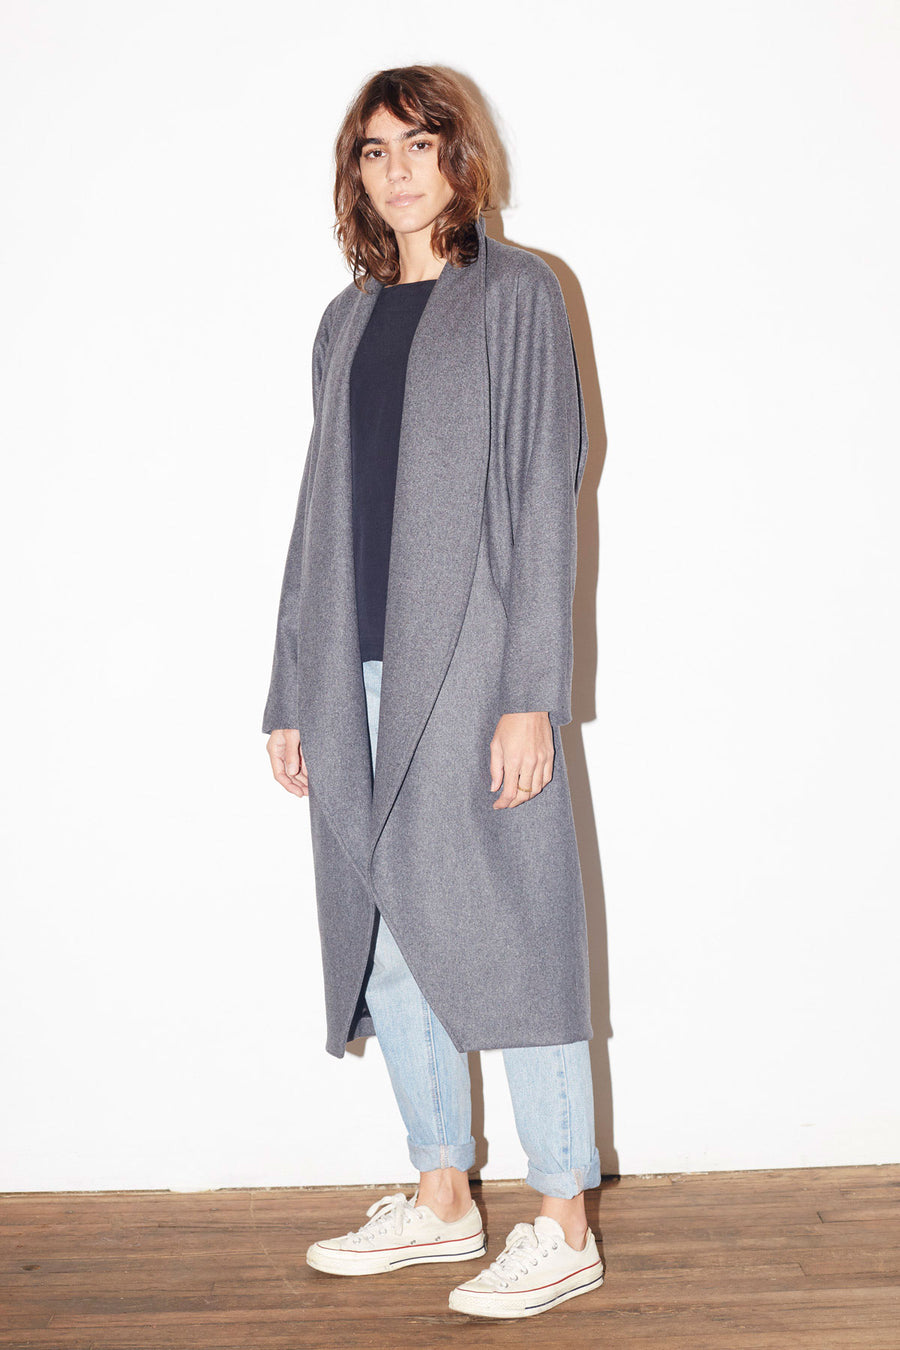 Charcoal Grey Wool Escape Coat